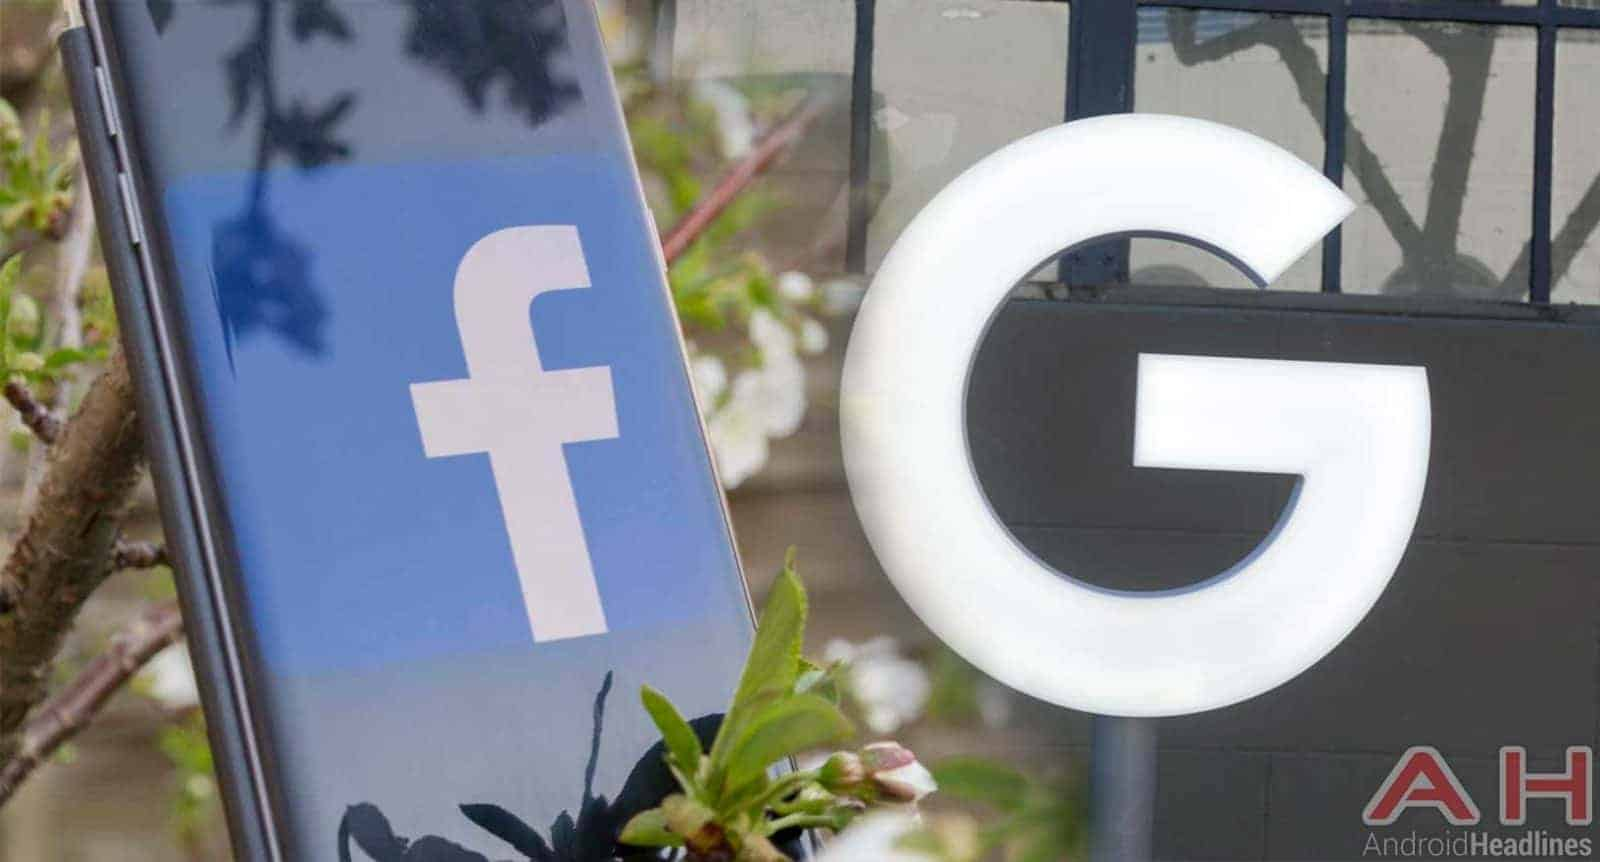 Googles Chip Development Head Snapped Up By Facebook